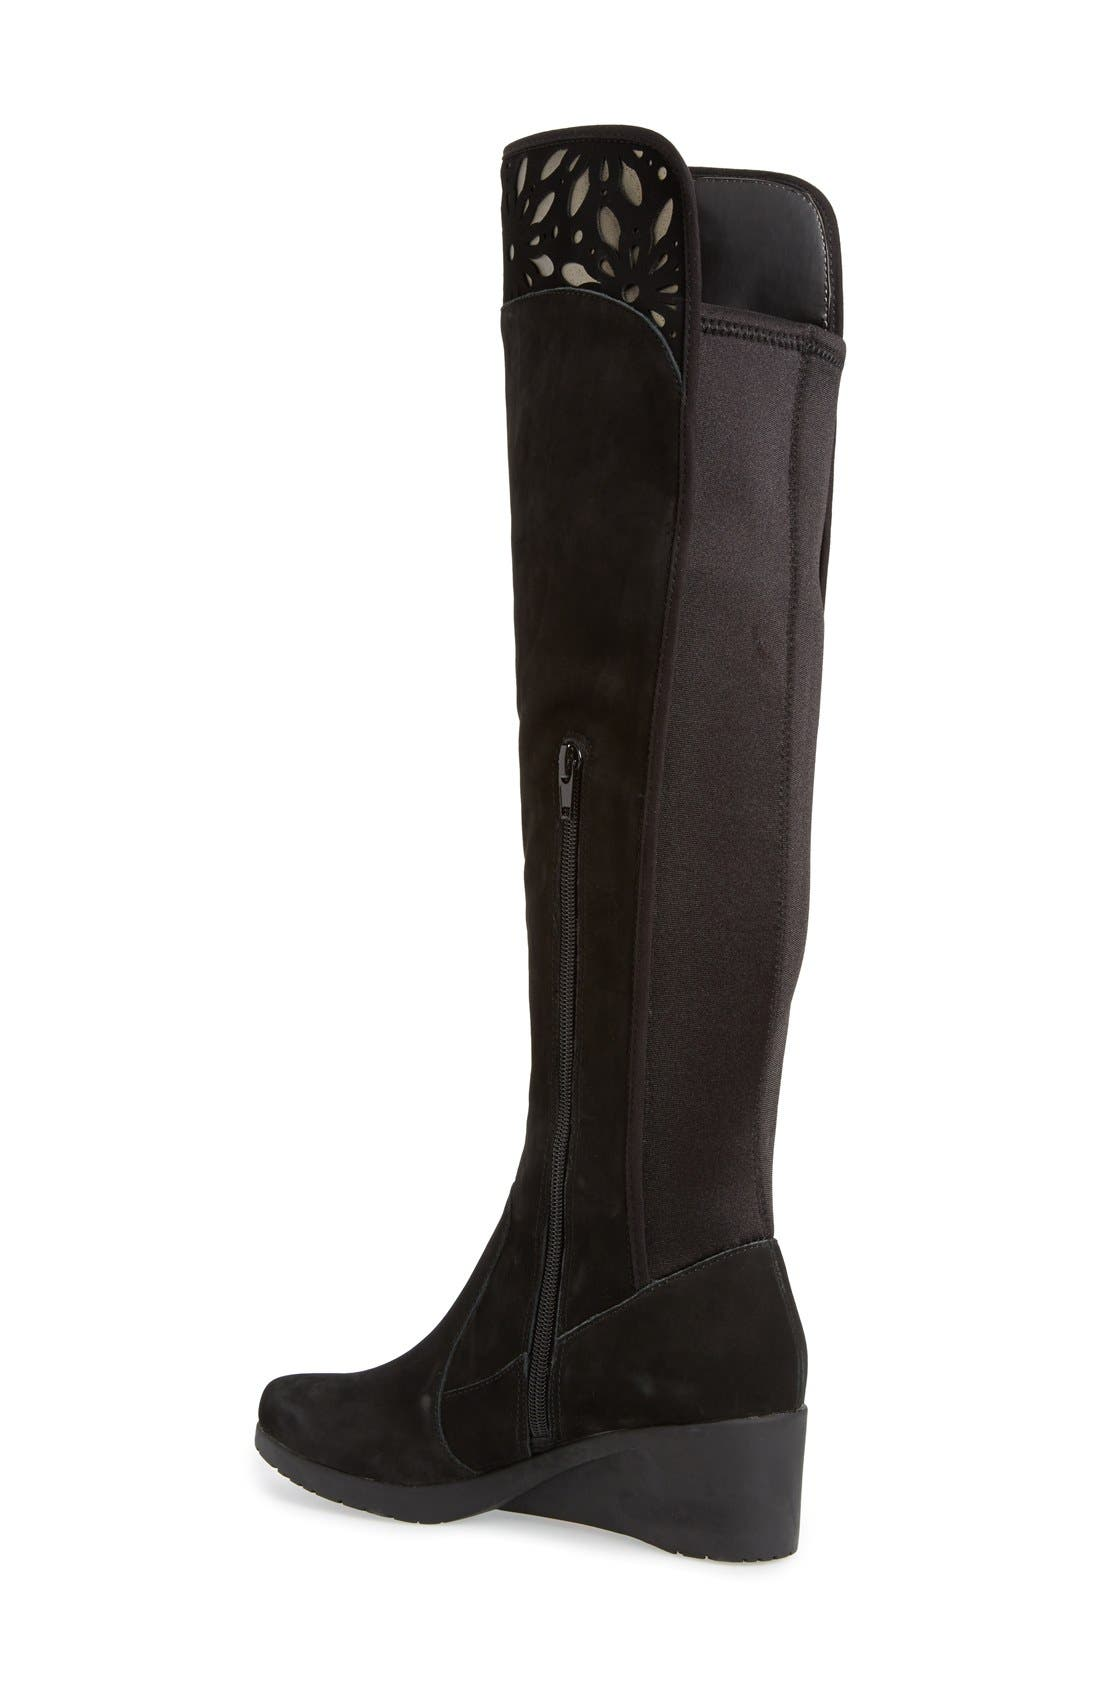 Alternate Image 2  - Jambu 'Natalia' Cutout Detail Water Resistant Over the Knee Boot (Women)